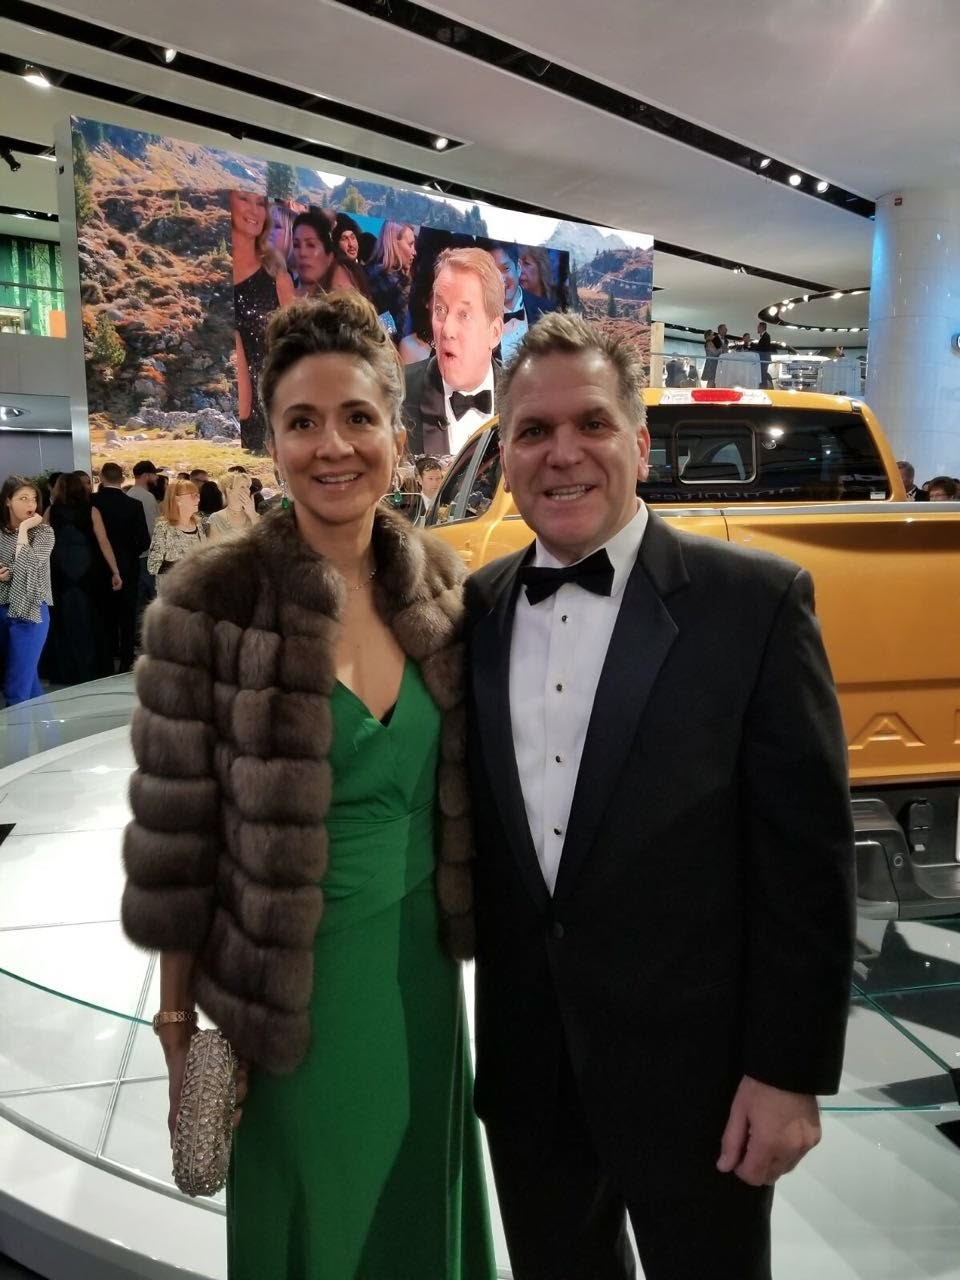 Vanessa Moriel, Managing Director Asia Pacific, LIASE Group and John Bukowicz, Managing Director Americas, LIASE Group at the new Ford Ranger's booth.